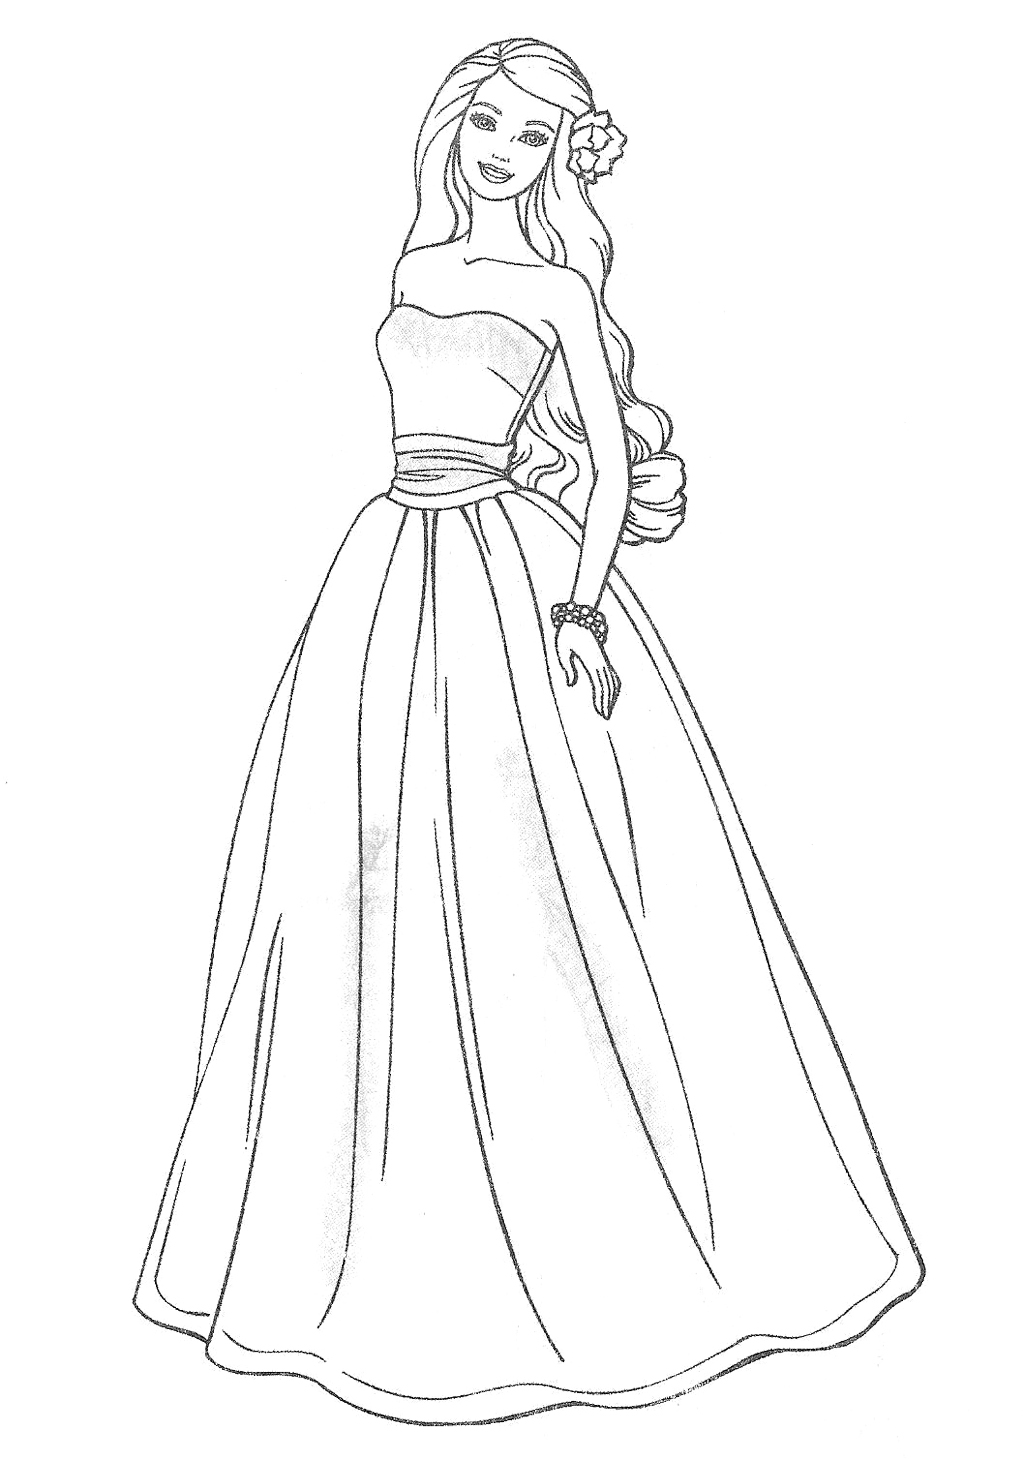 dresses coloring pages dress coloring page for girls printable free coloring dresses coloring pages